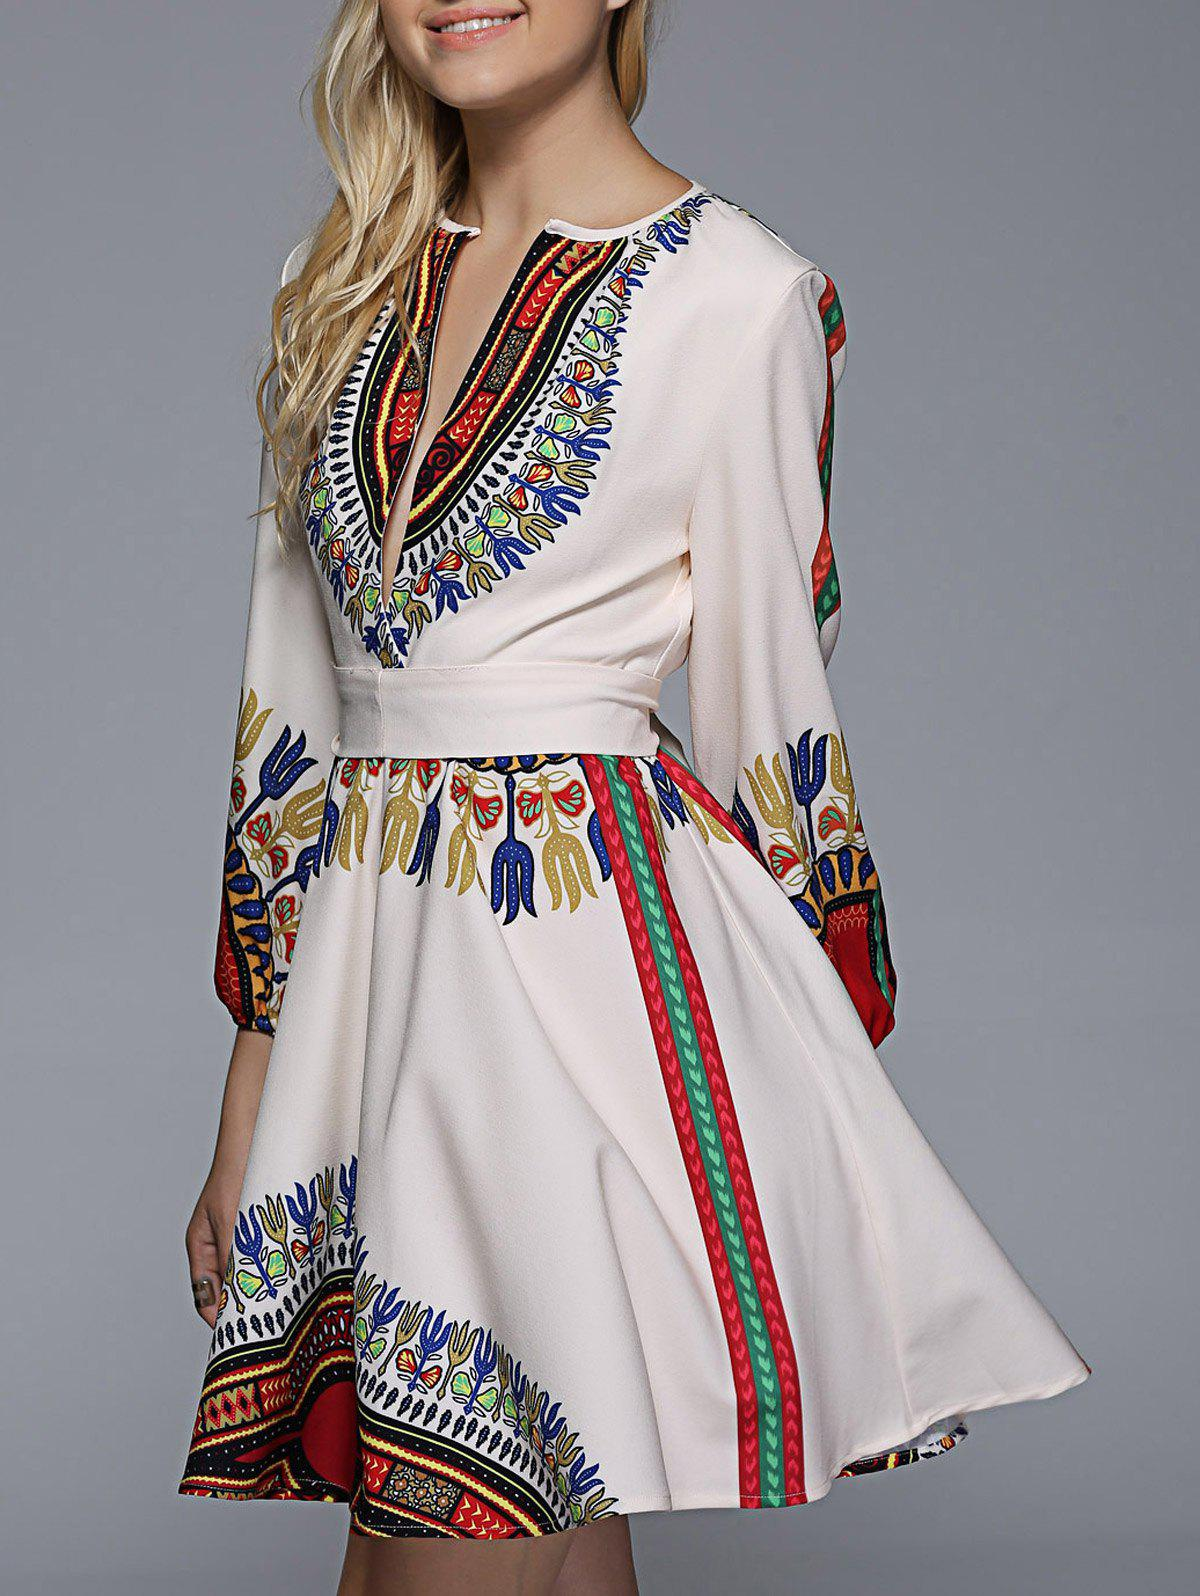 Elegant Women's Plunging Neck Long Sleeve Tribal Print Mini Shift Dress - OFF WHITE L